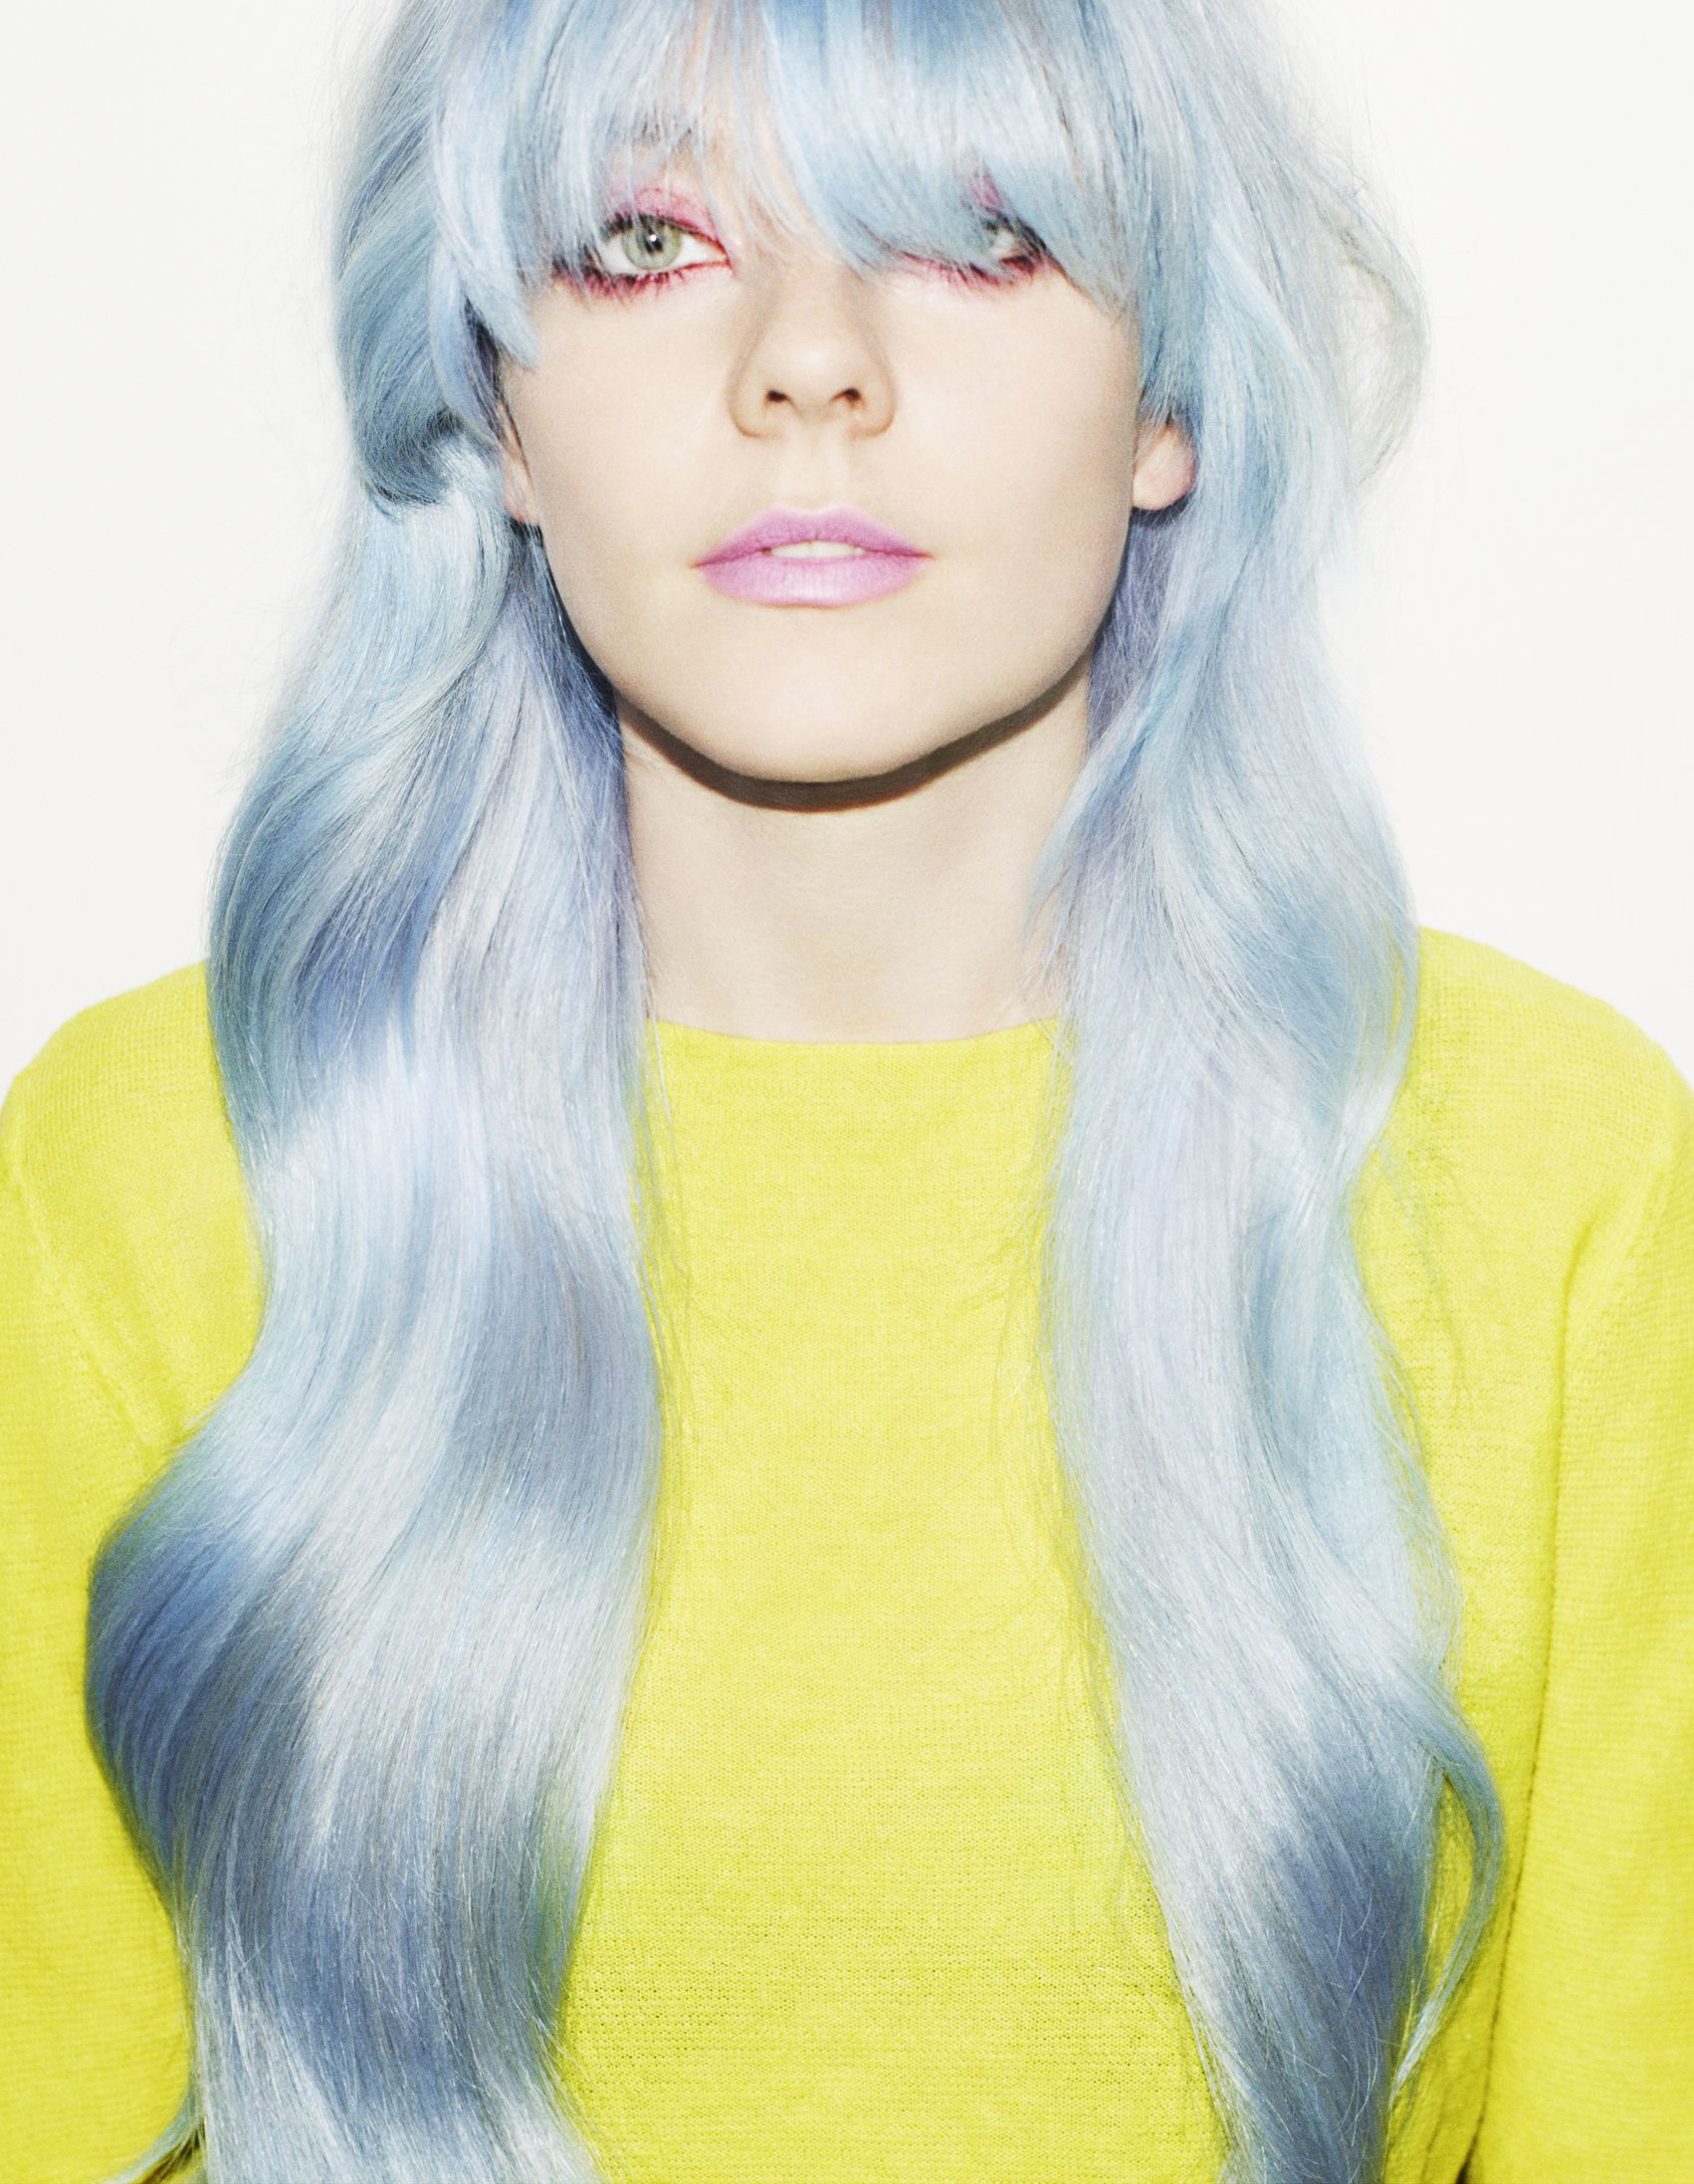 Undercover Beauty 5 Makeup Counter Makeovers Pastel Blue Hair